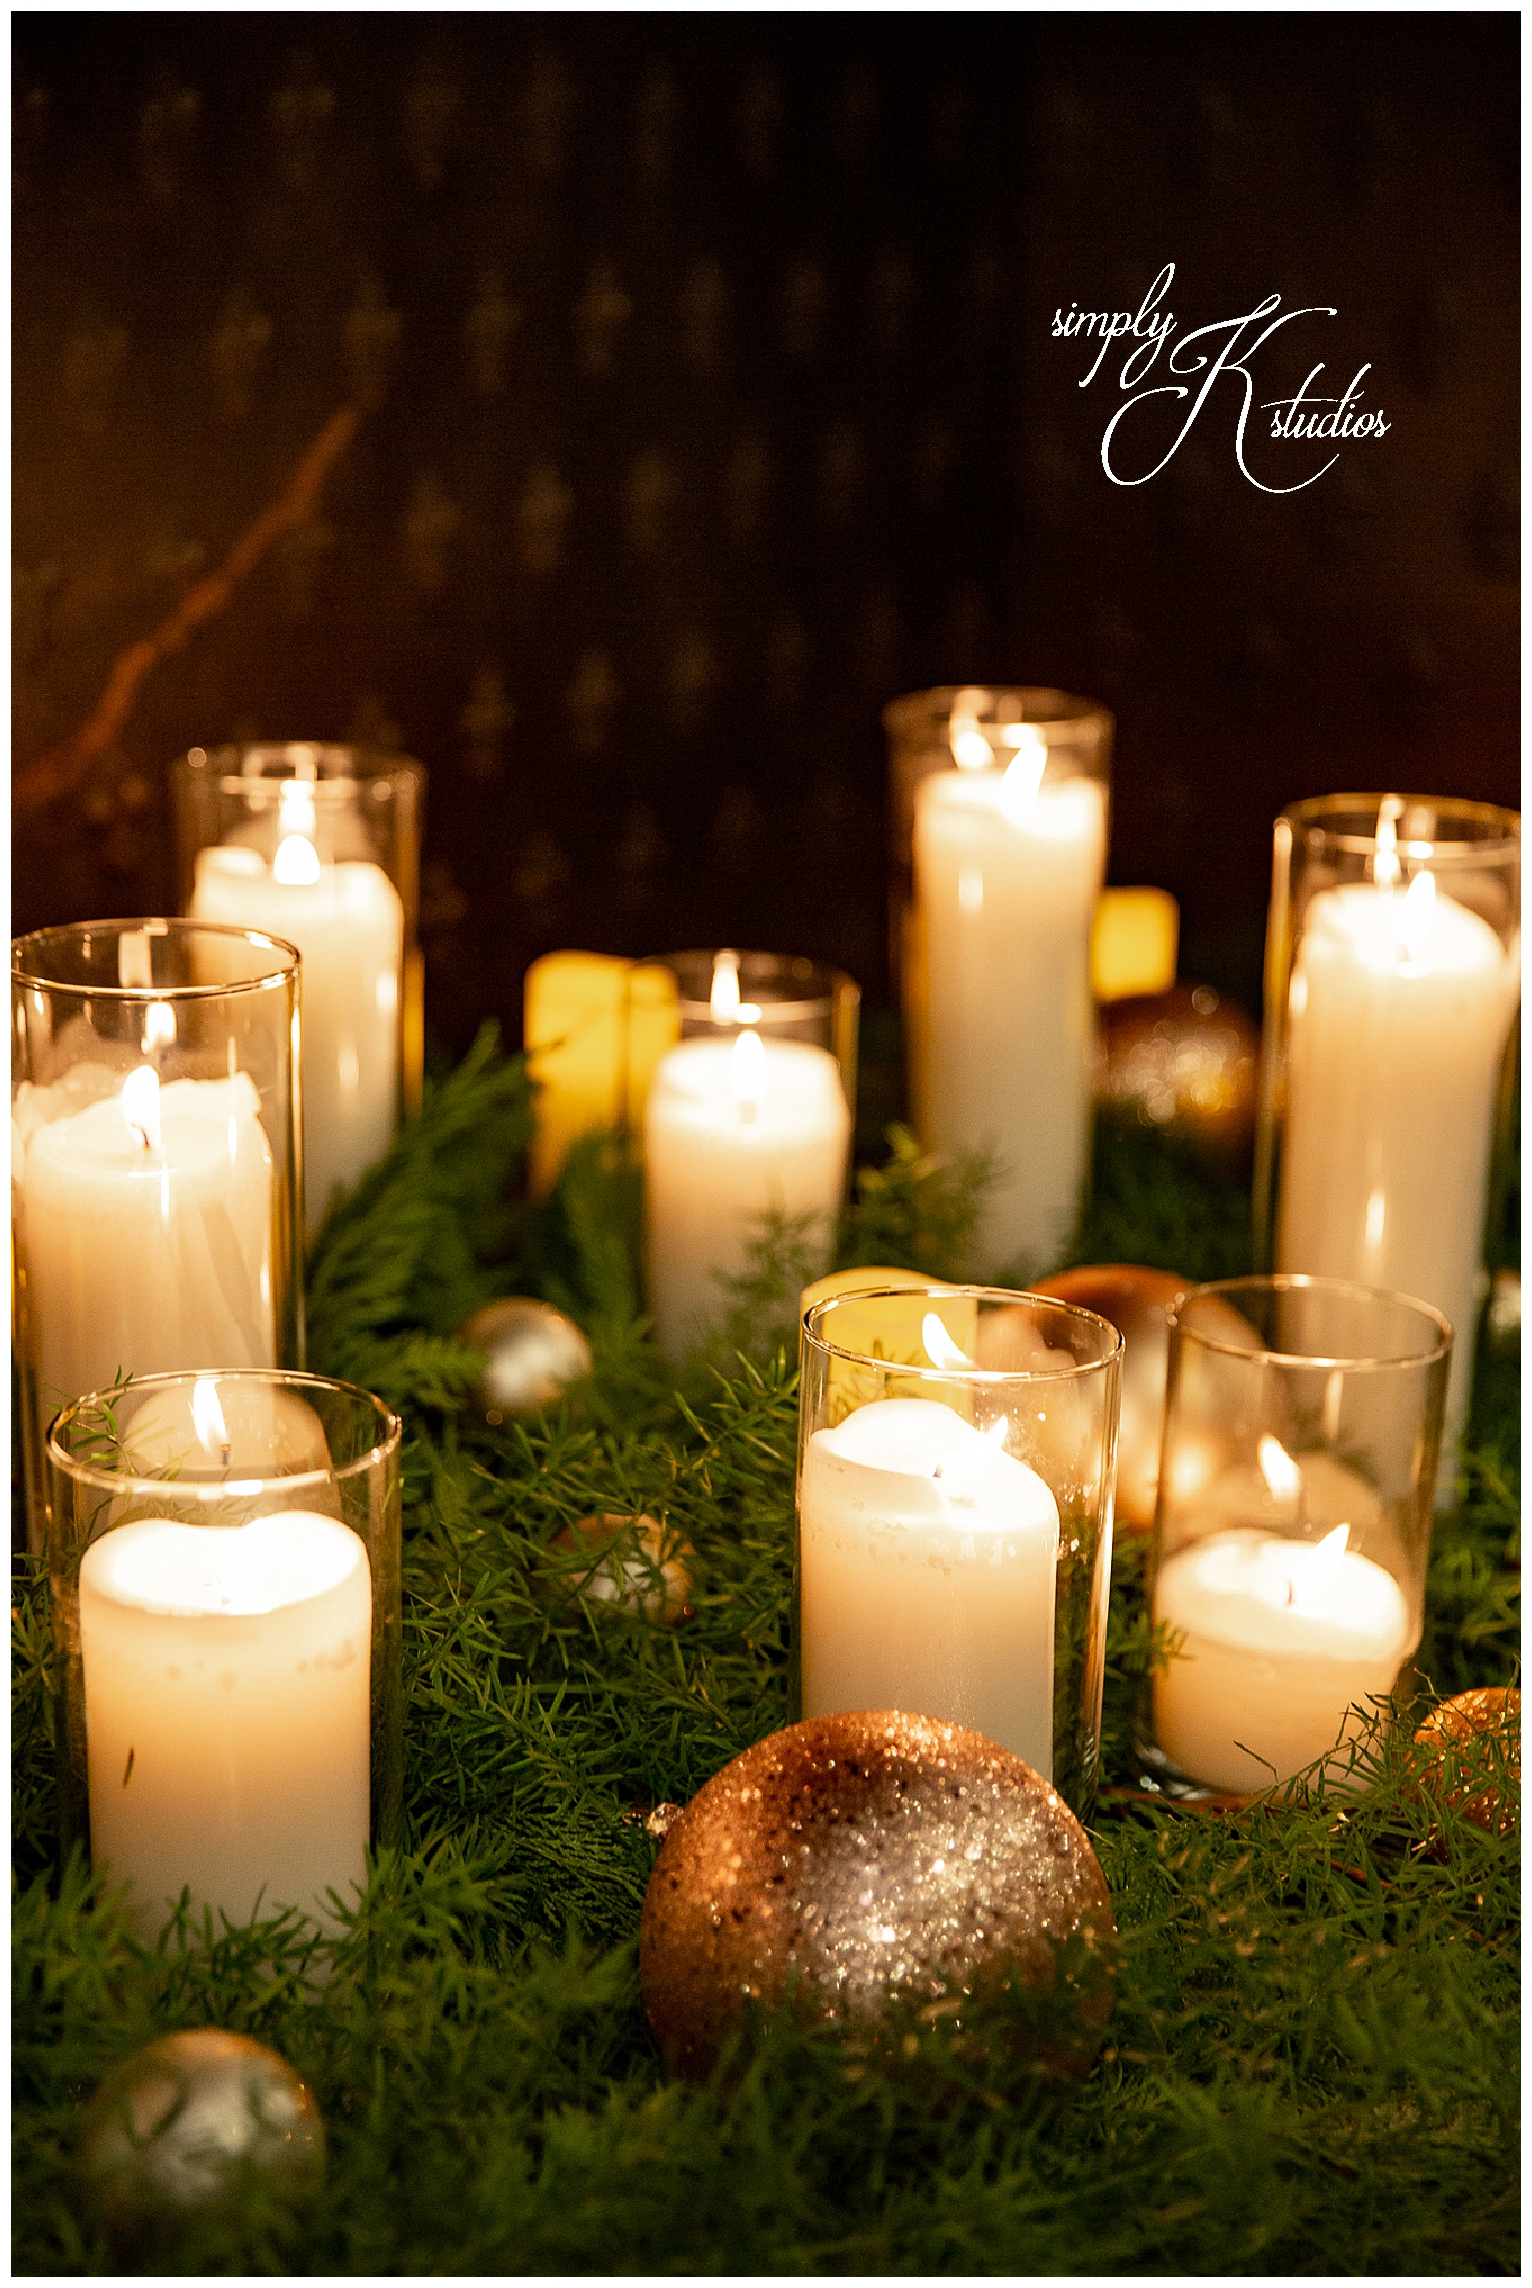 73 Wedding Ideas for a Candlelit reception.jpg